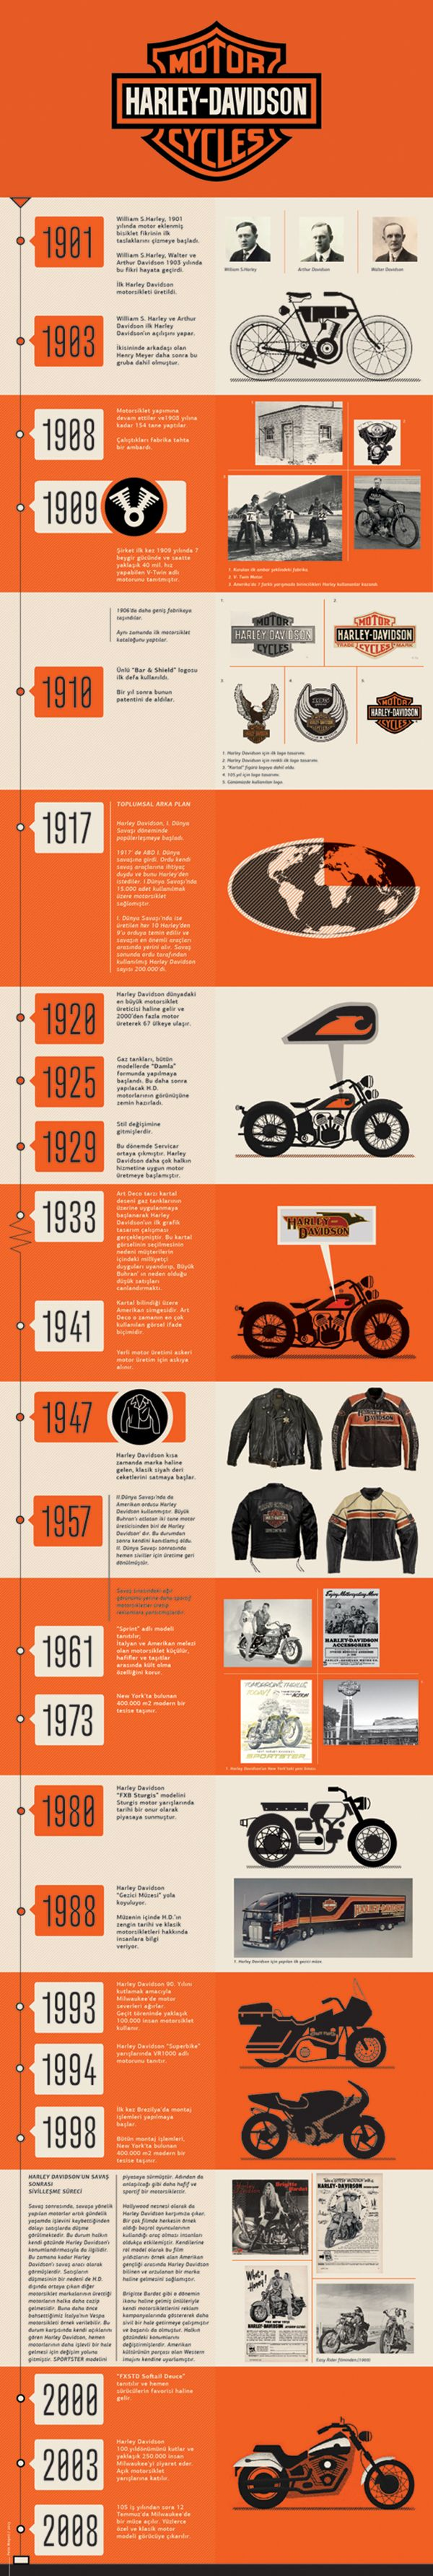 Harley Davidson History of Timeline Design by Pelin Meşeci , via Behance